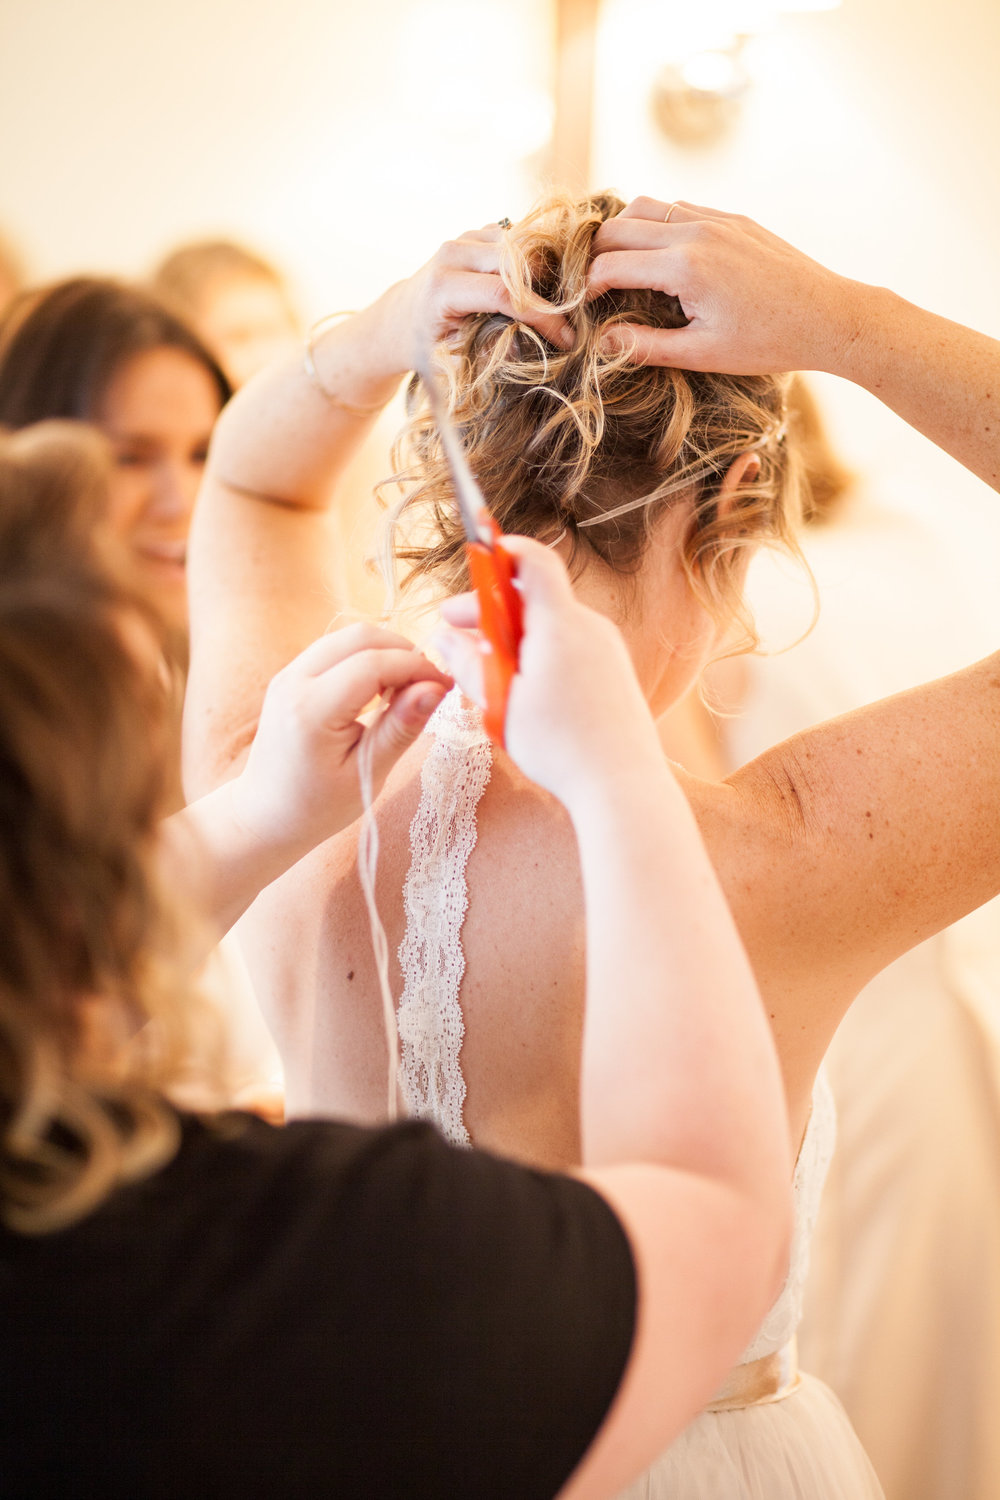 AllisonandScott'sApril2016Wedding-37.jpg